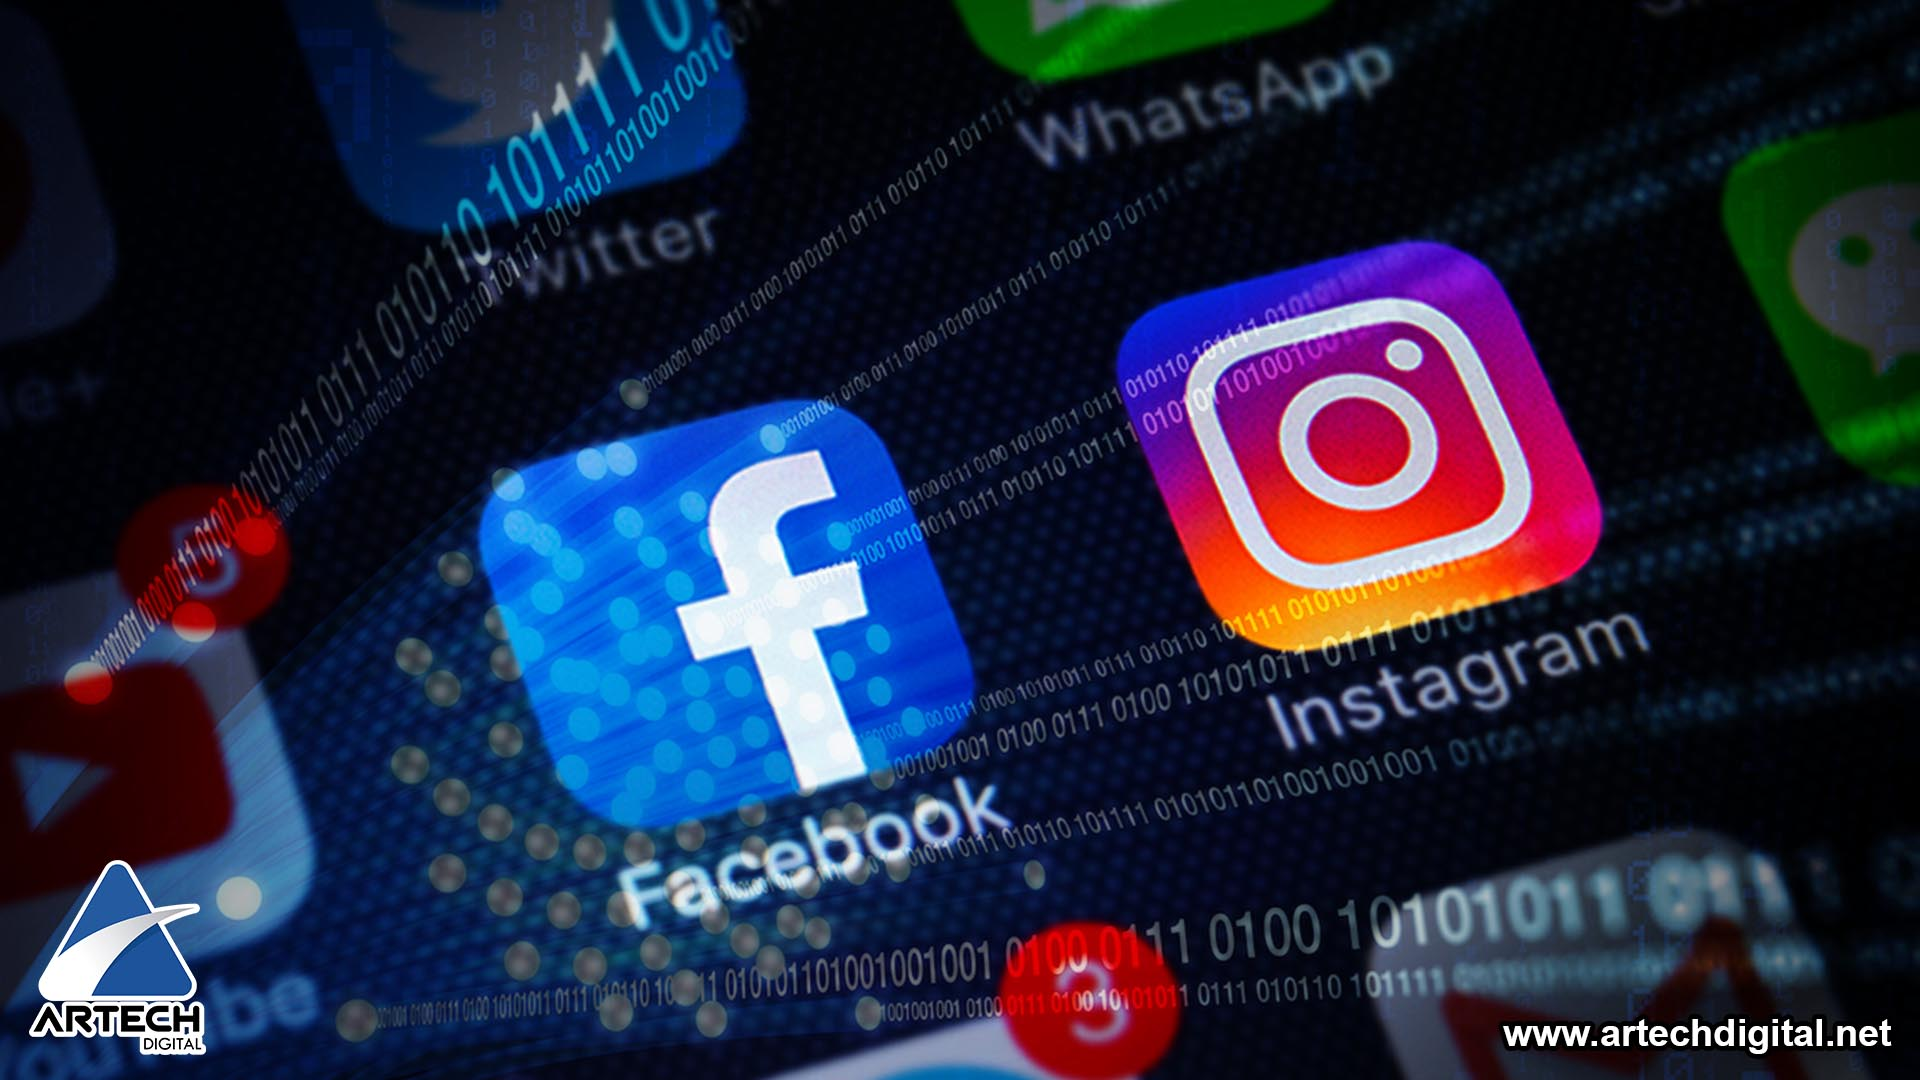 Facebook e Instagram - Artech Digital